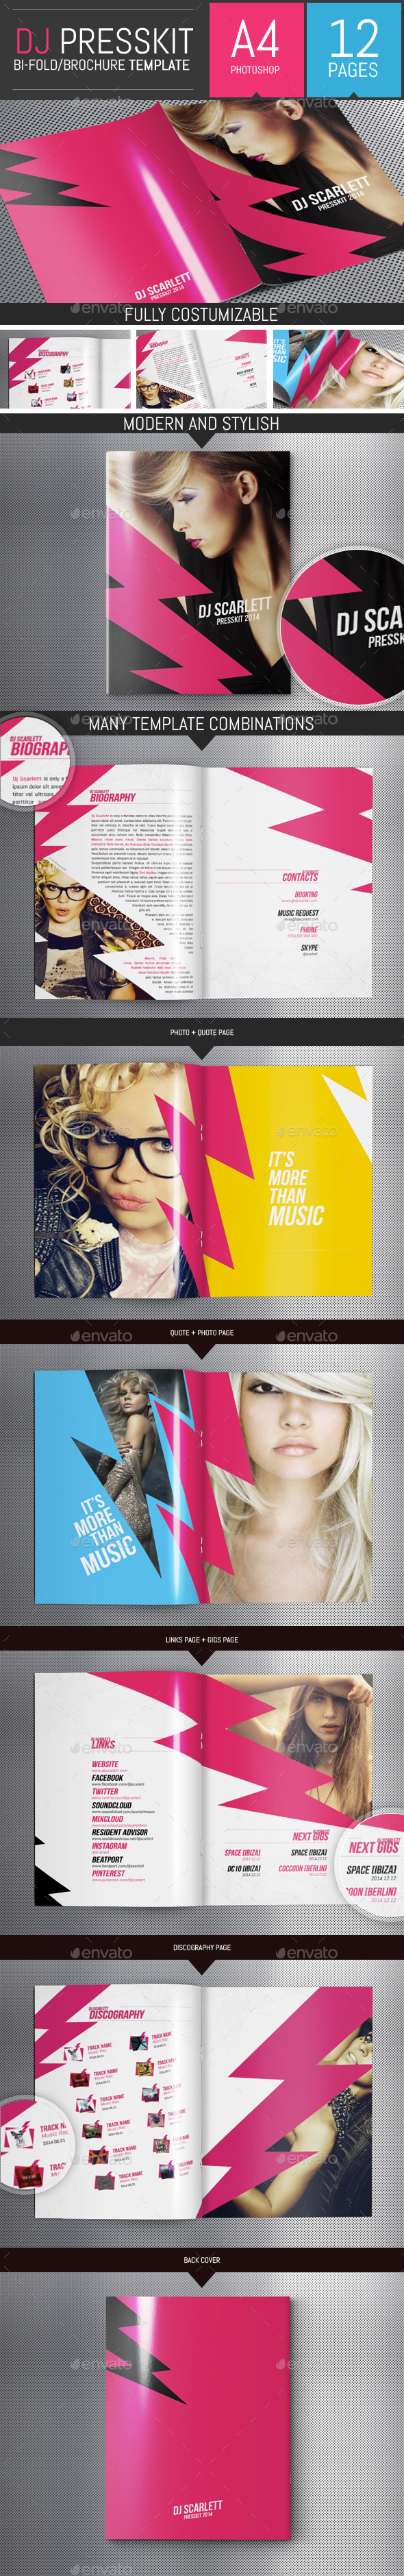 Indesign press release template for Dj press kit template free